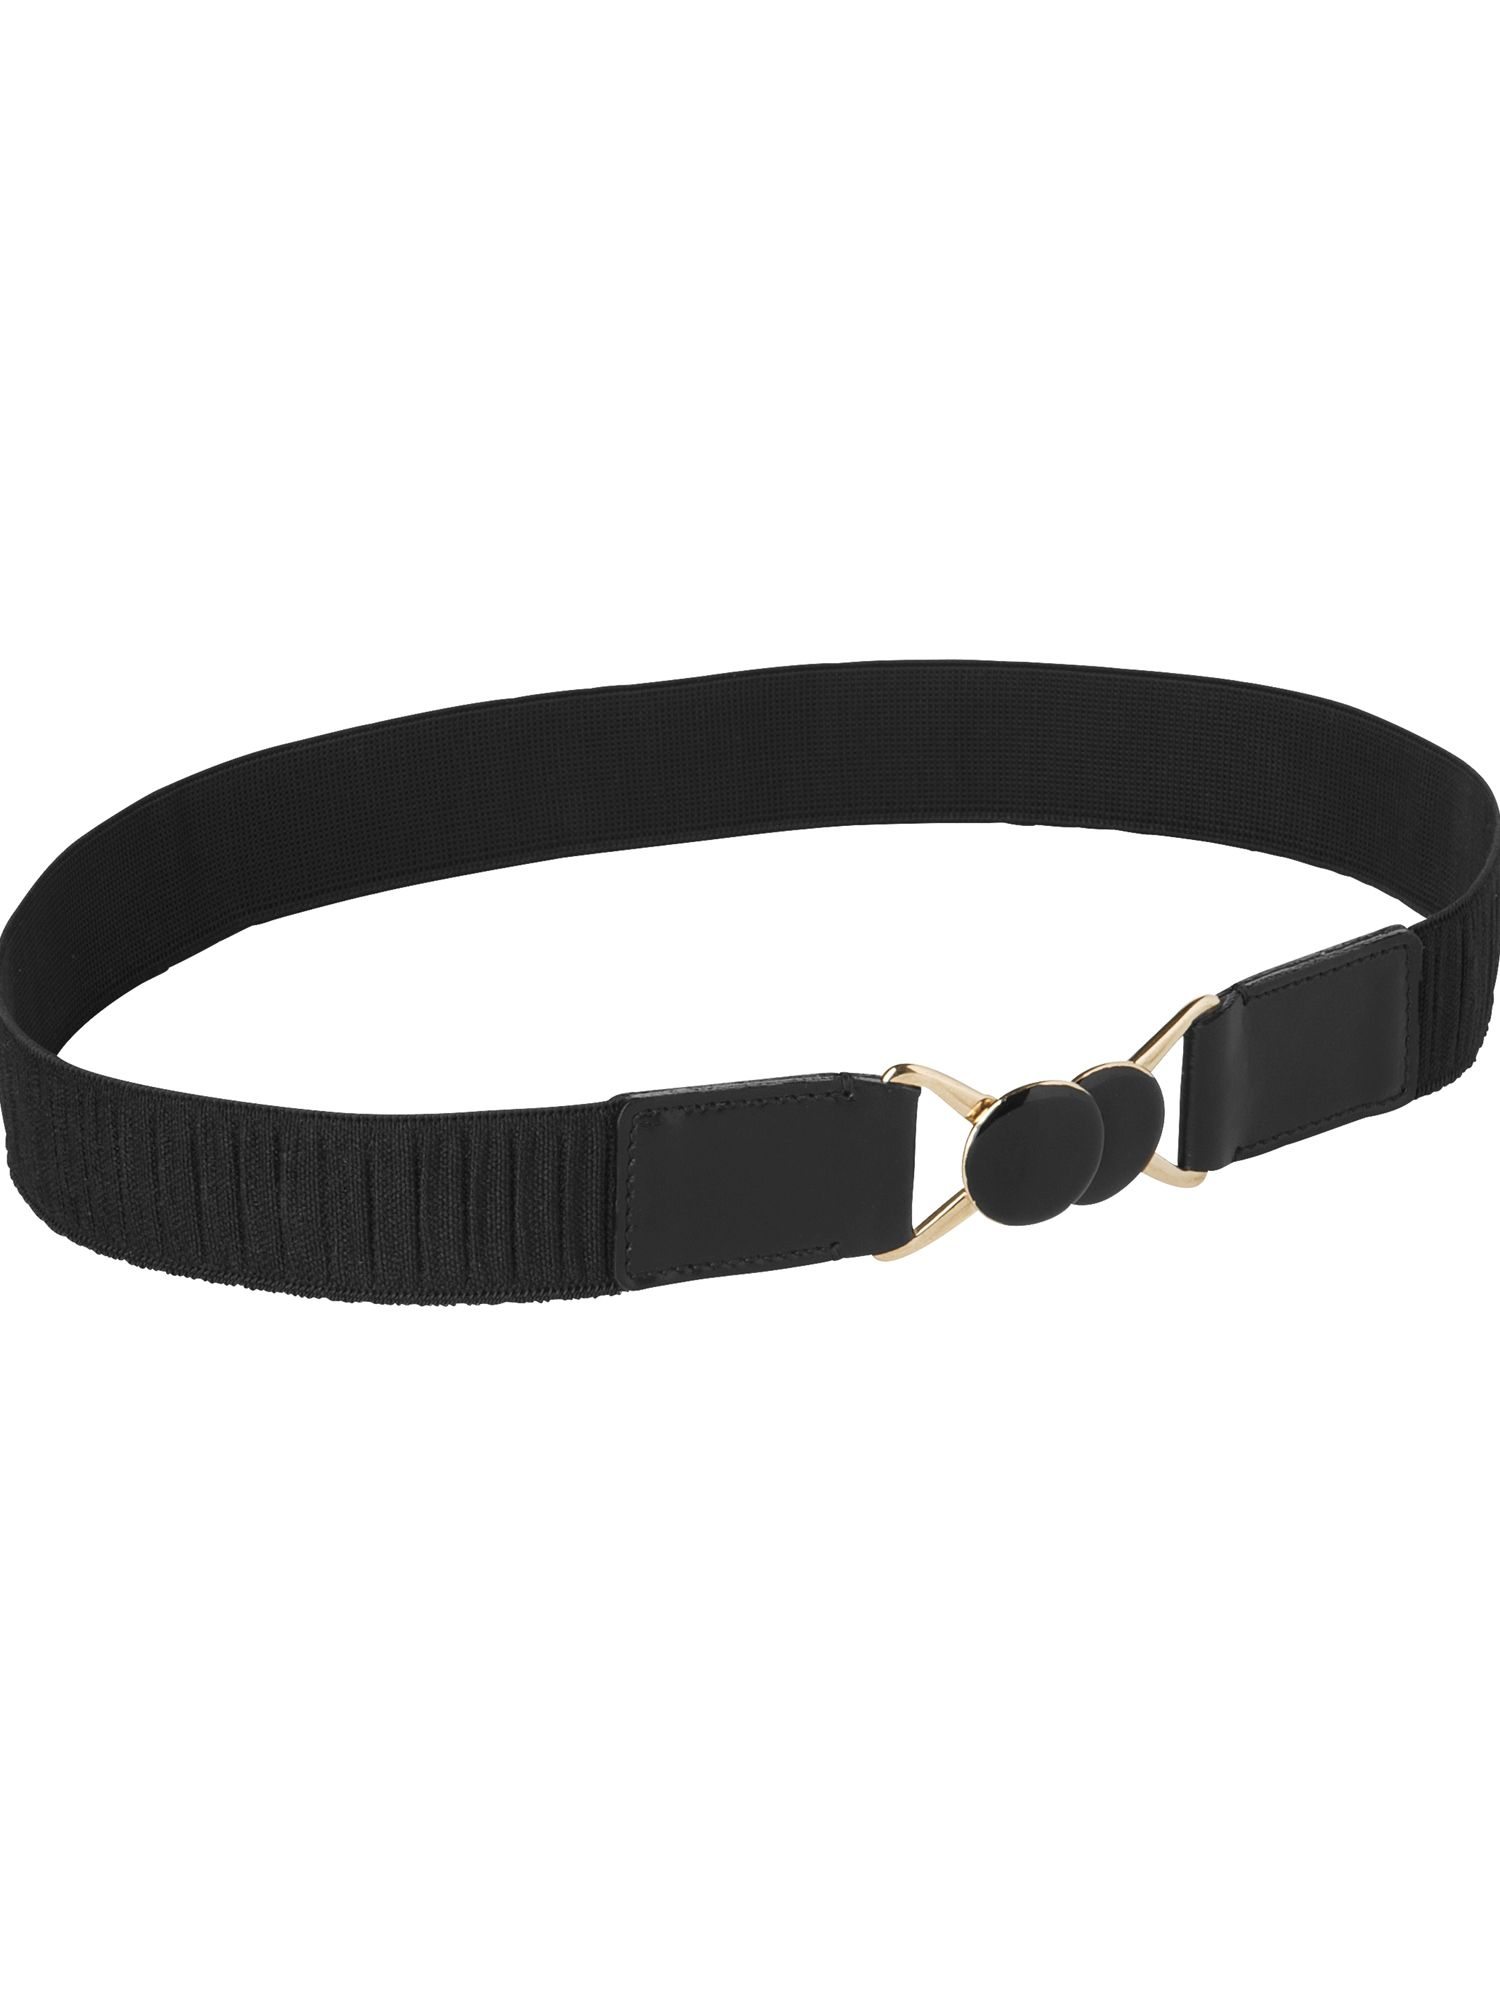 Metal circle buckle waist belt